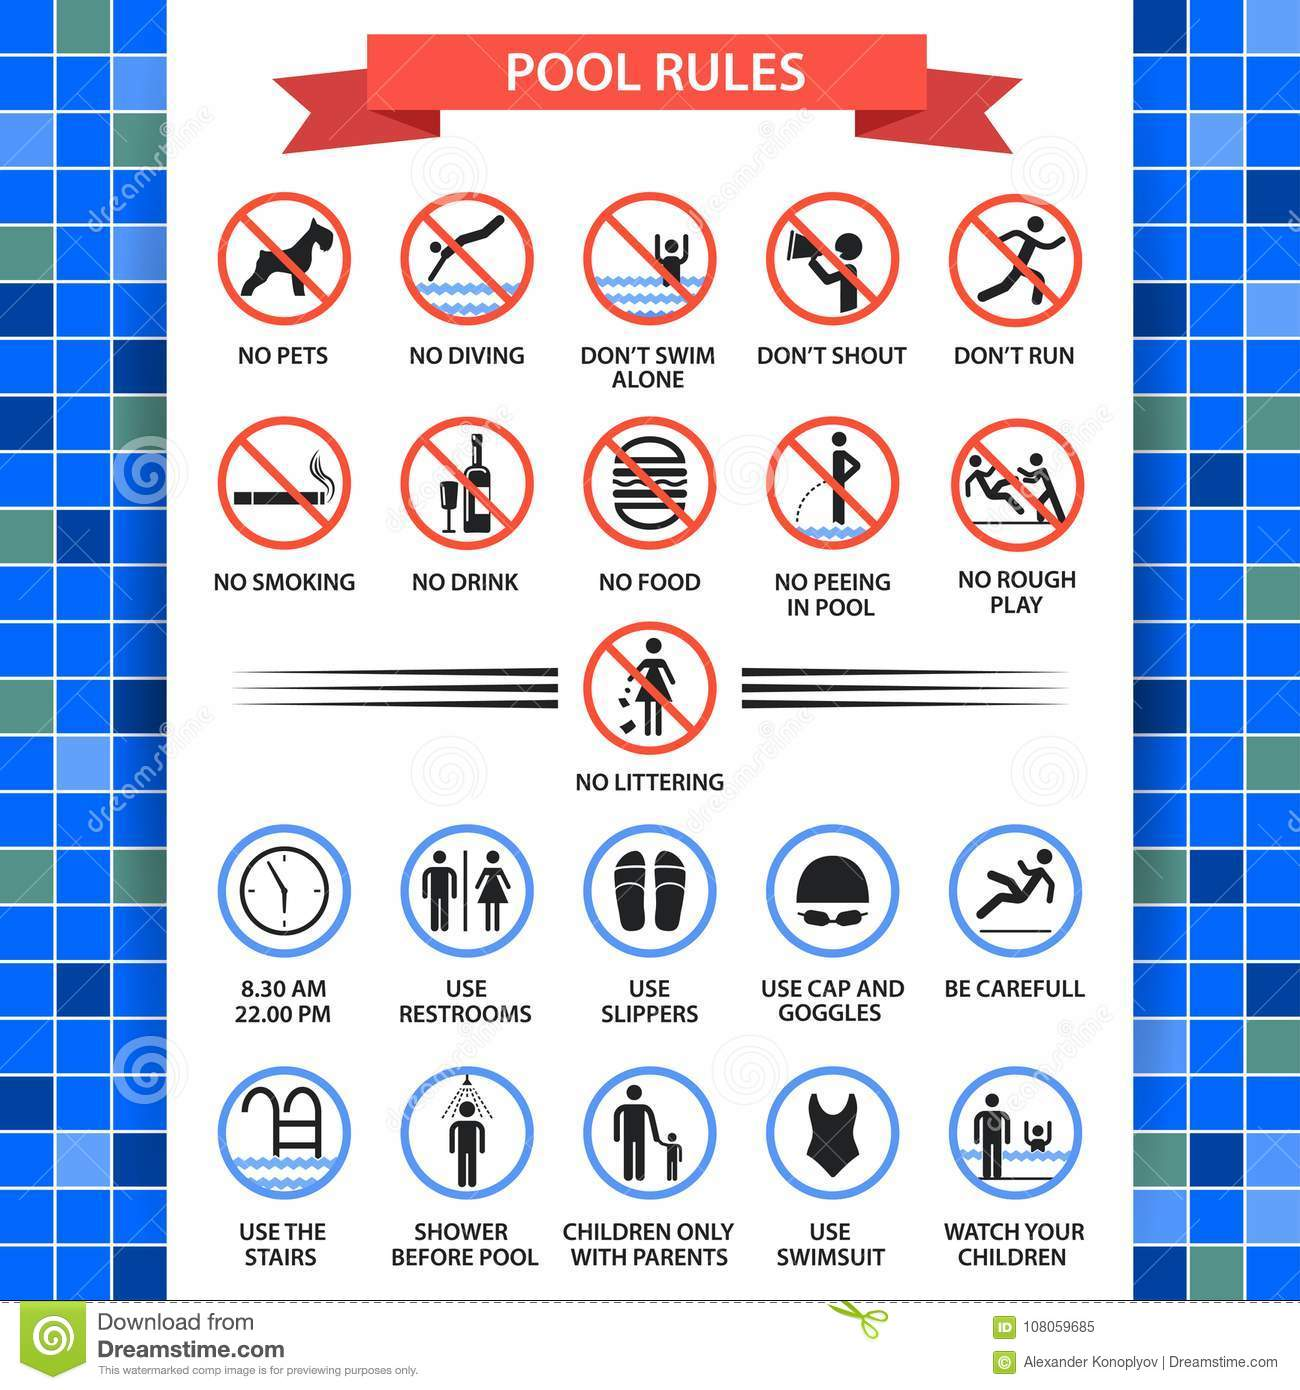 Internachi Inspection Graphics Library Swimming Pools Manual Guide